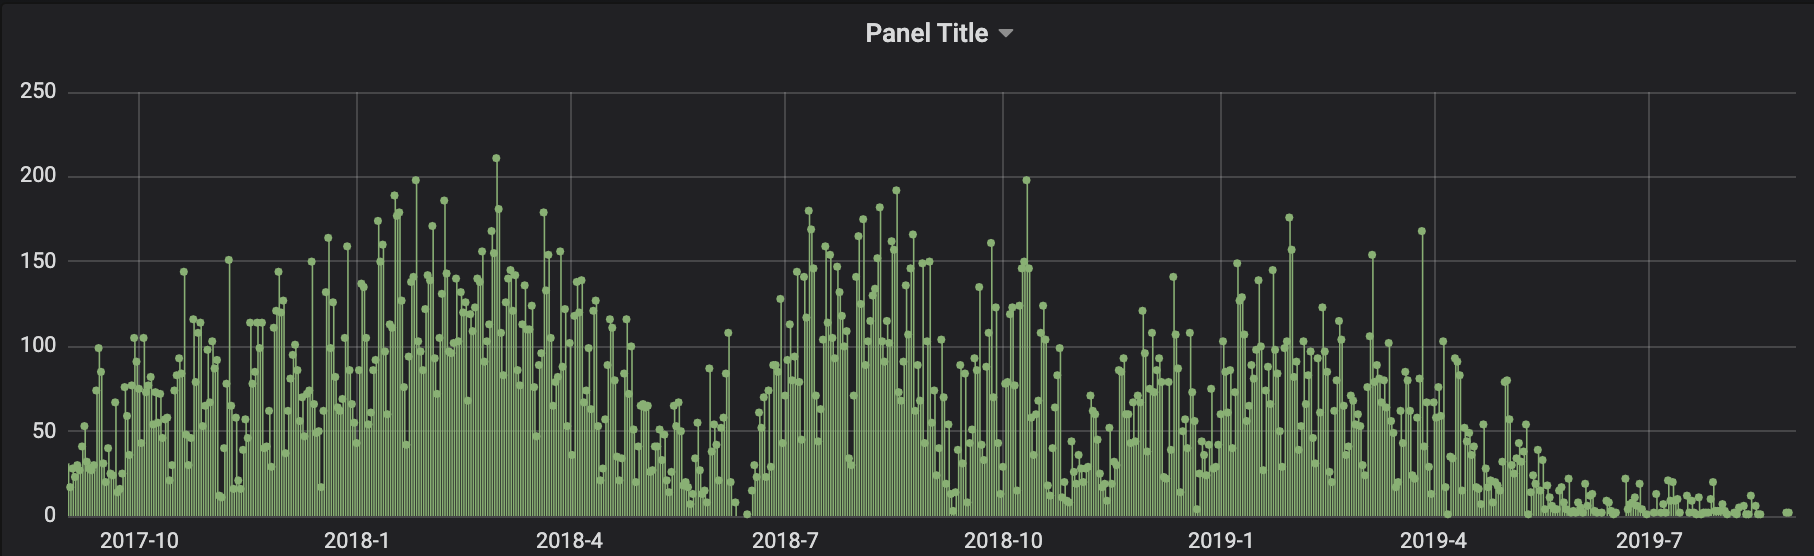 one year of churning comments